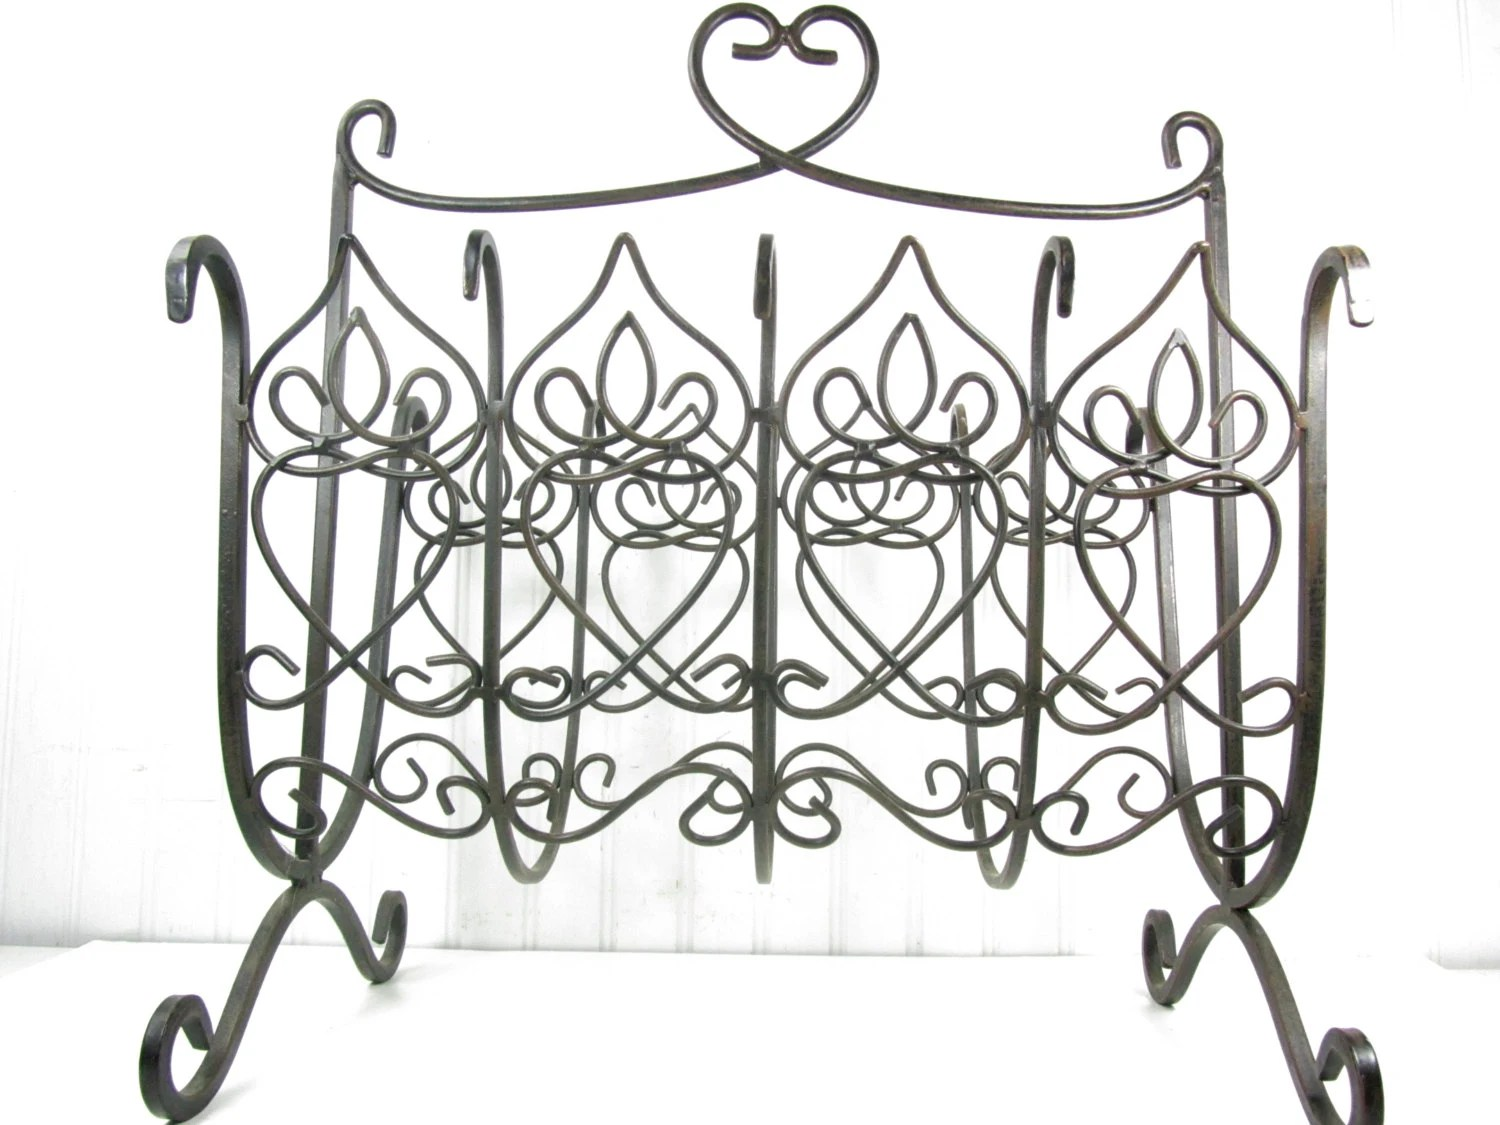 Magazine holdermagazine rack organizer wrought iron